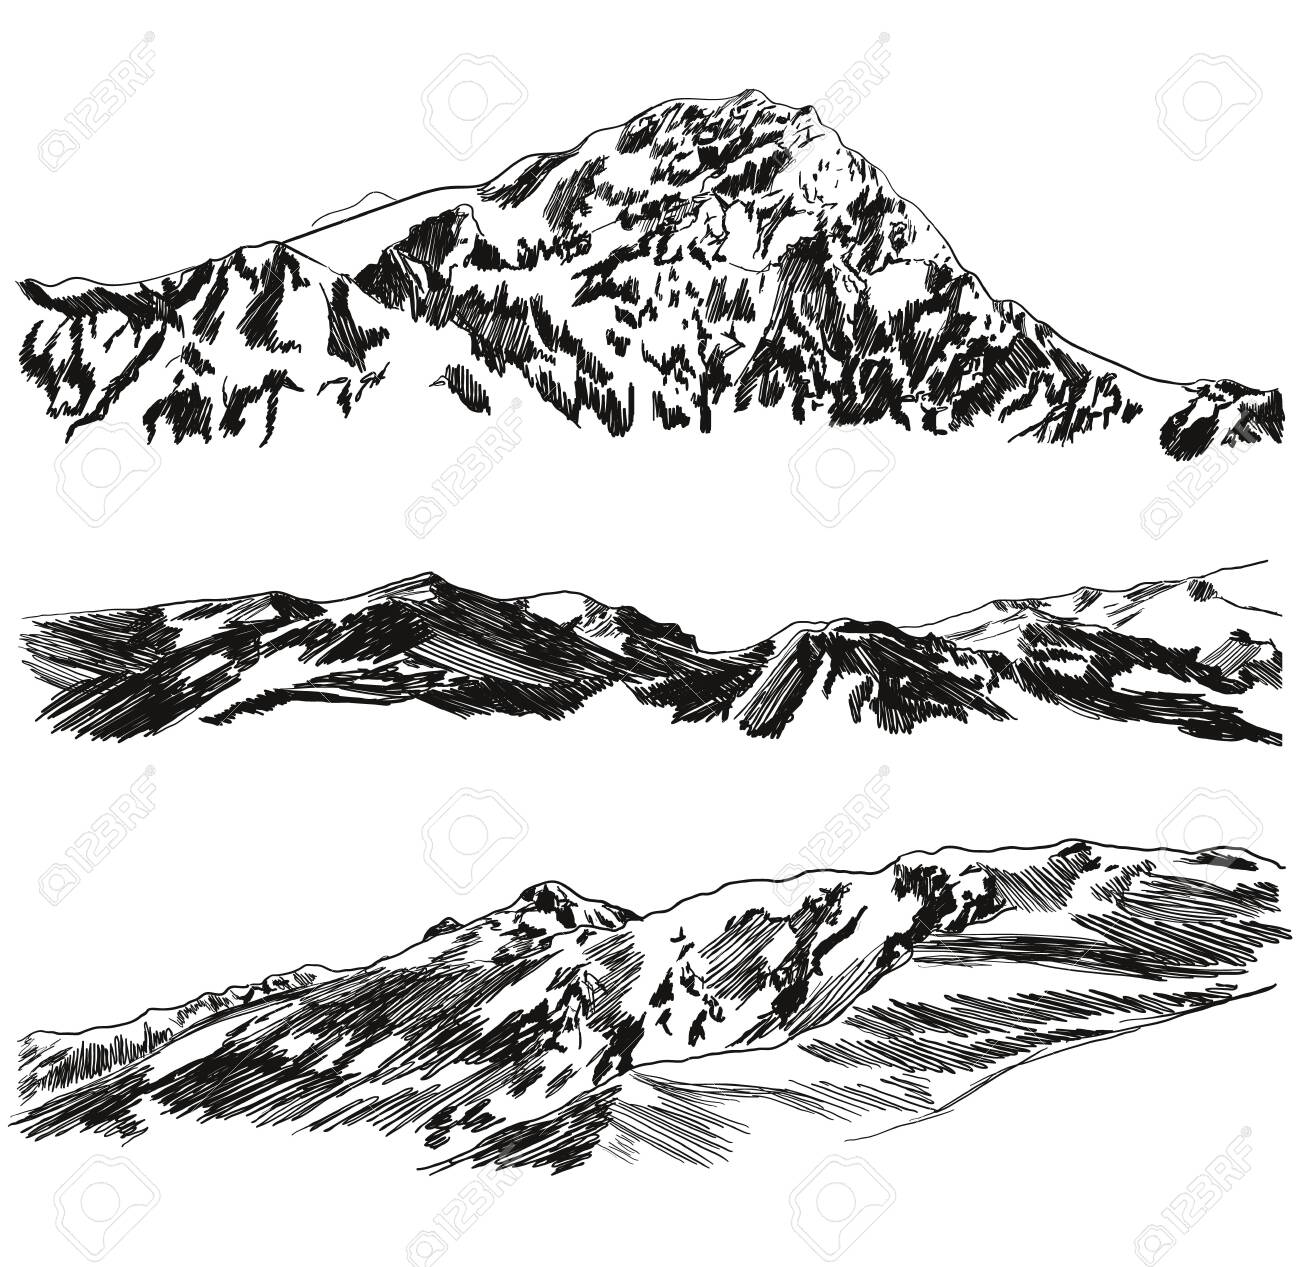 Vector Set of Hand Drawn Mountains Sketches, Black Scribble Freehand Drawings Isolated on White Background, Wild Nature Illustration. - 133290676